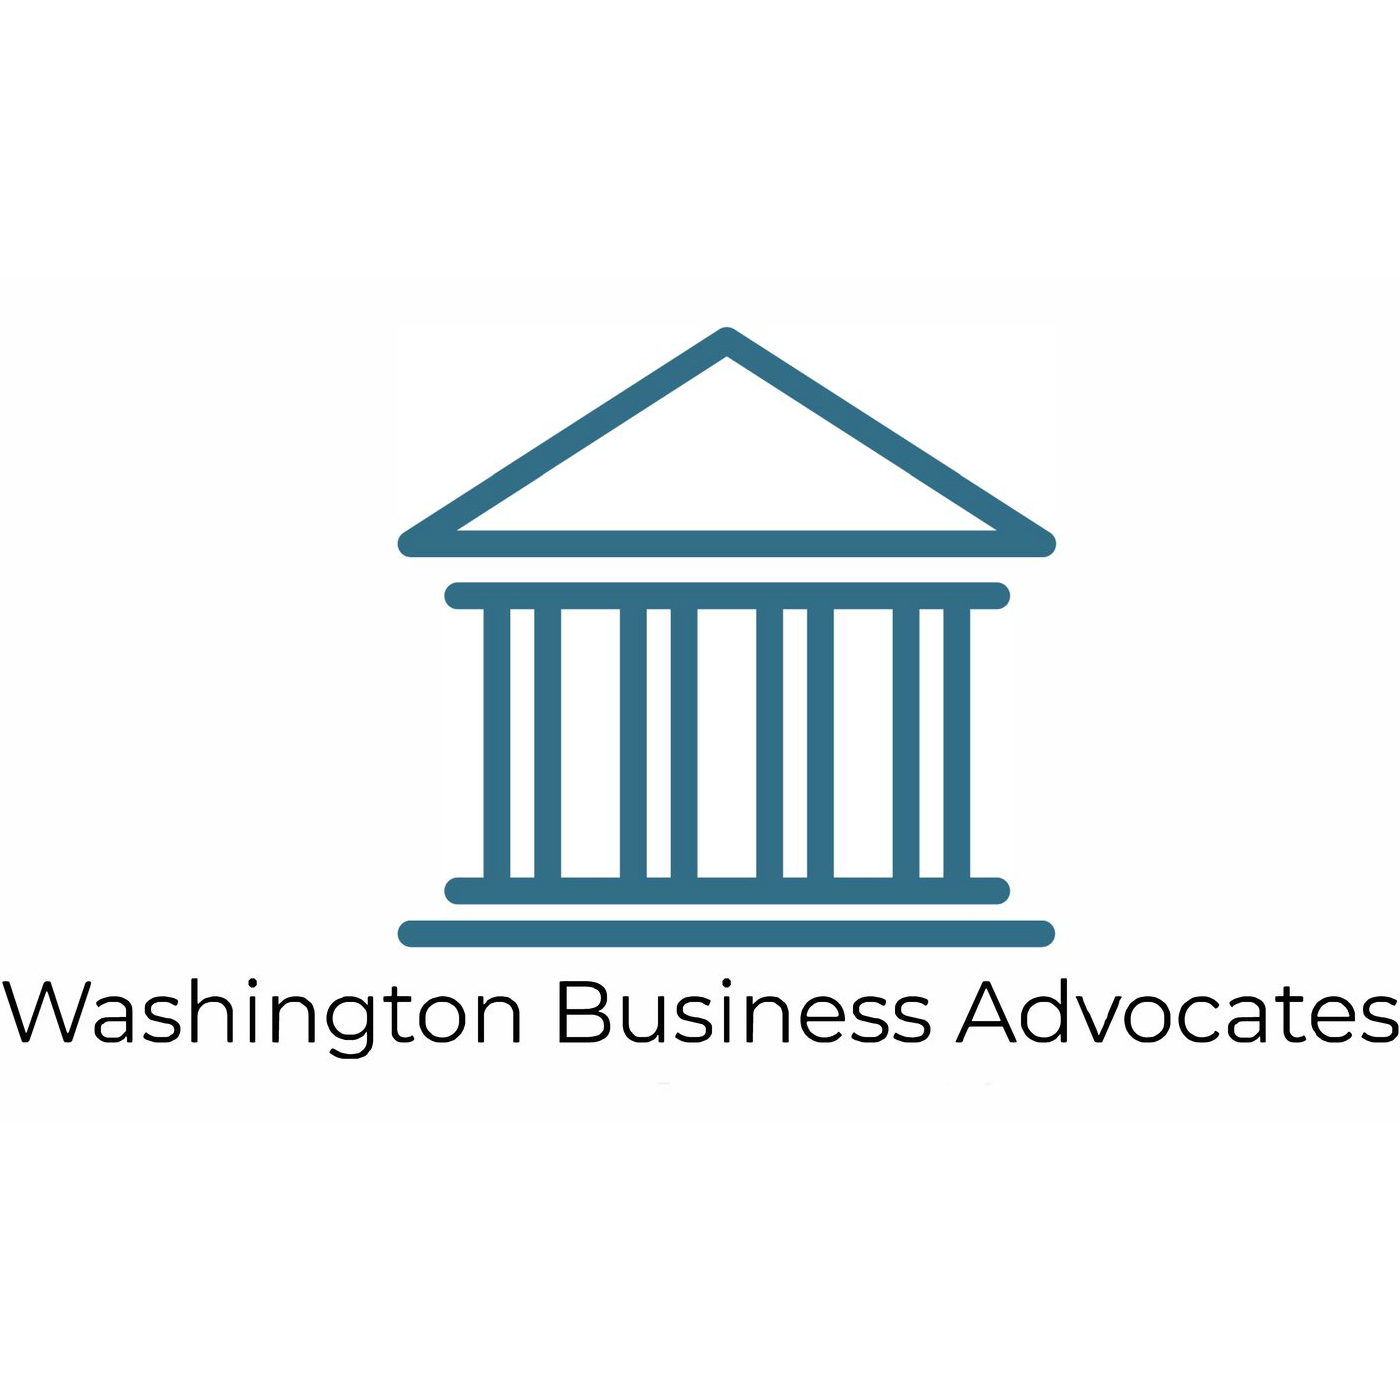 Washington Business Advocates